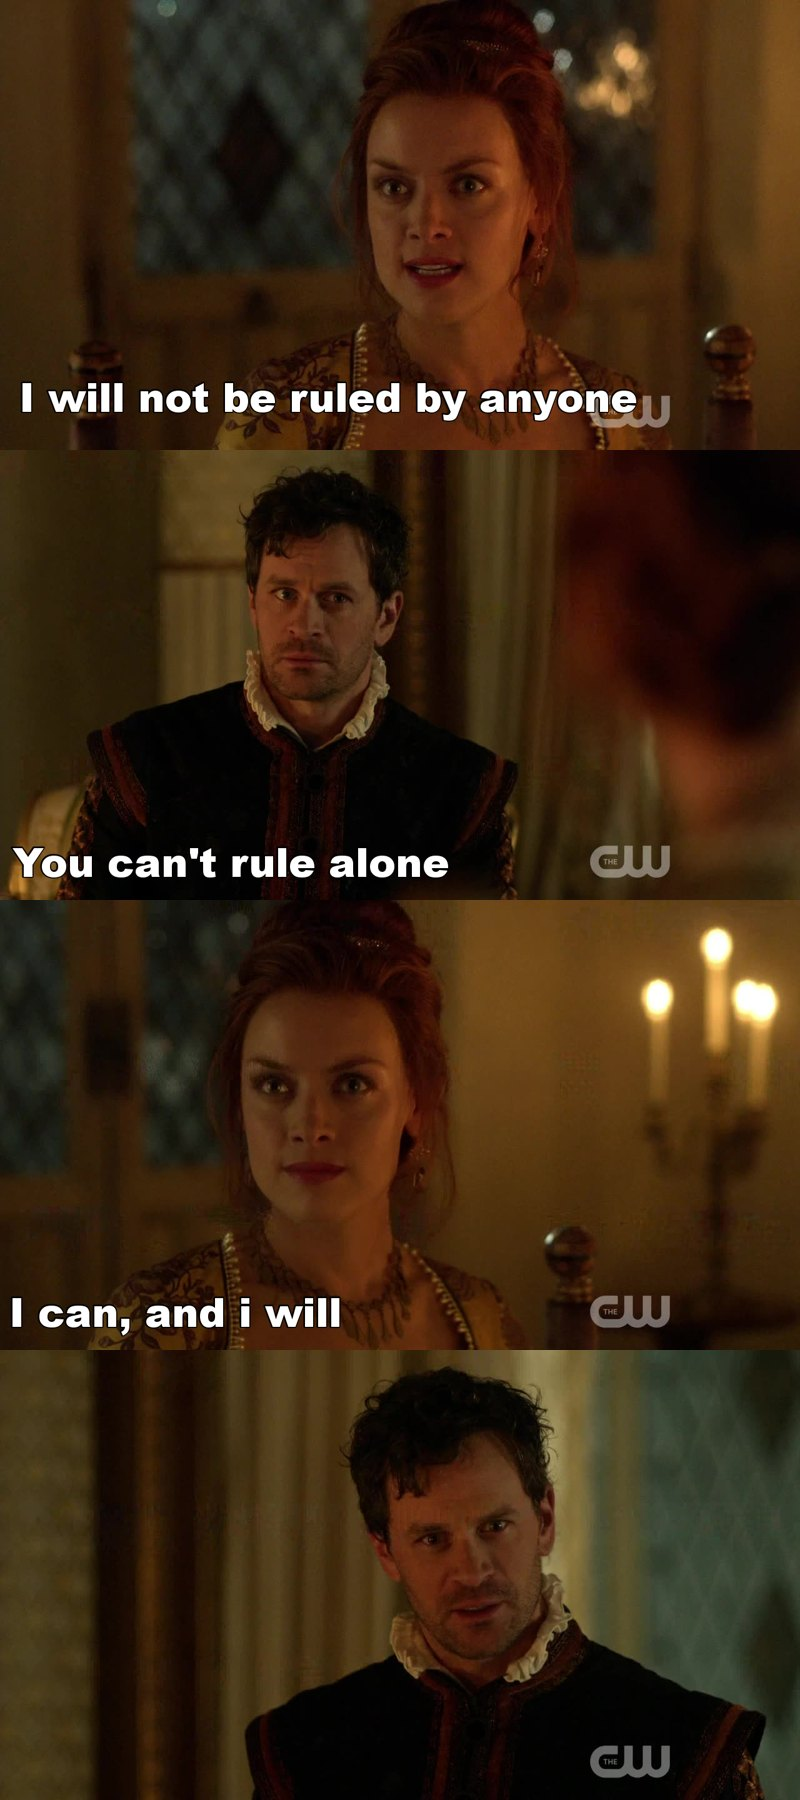 Despite she's a treat for Mary I can't hate her. I mean, wanting rule alone, be indipendent, be proud of herself and about her ability, her strength, she looks like the real Elizabeth and I'happy they are respecting history.